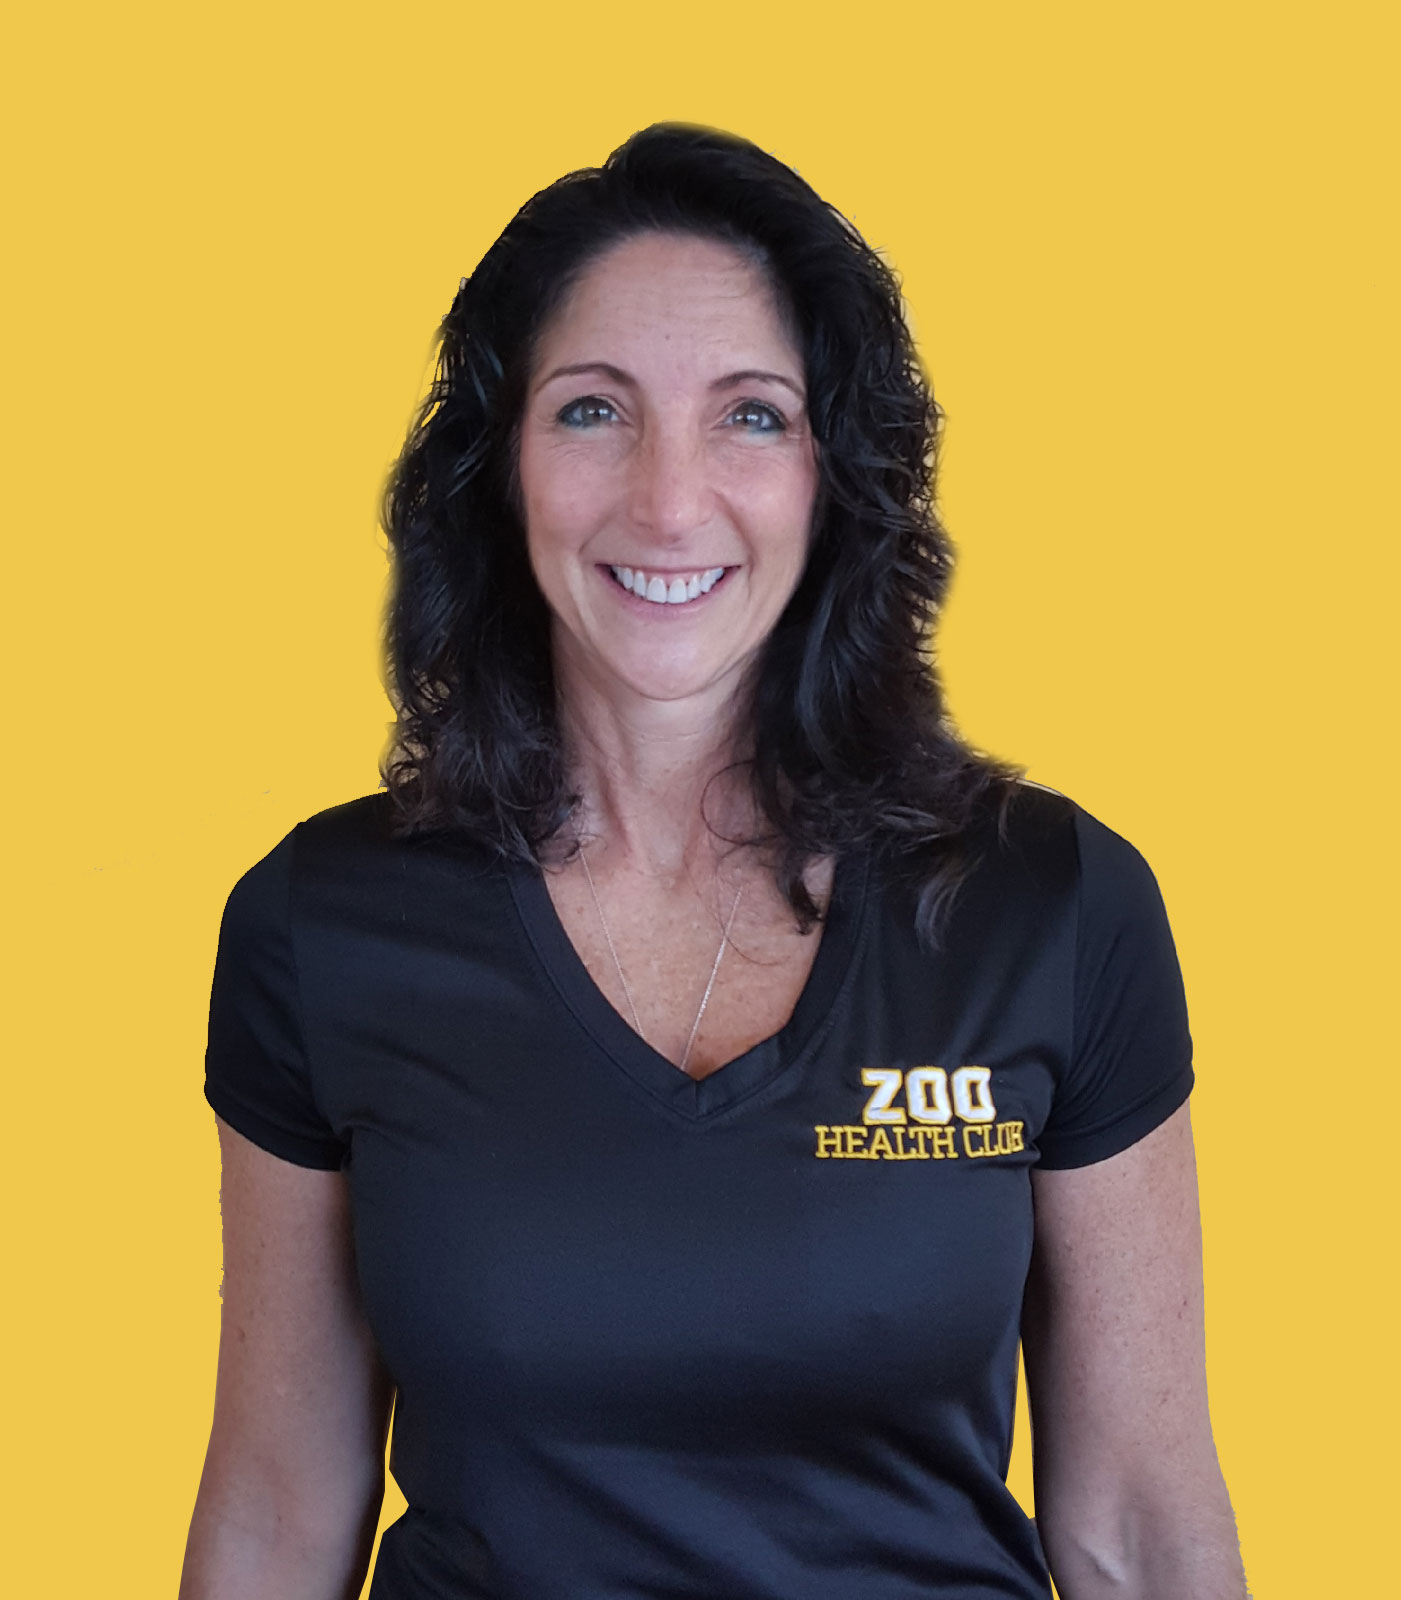 zoo gym fitness franchise opportunity michele